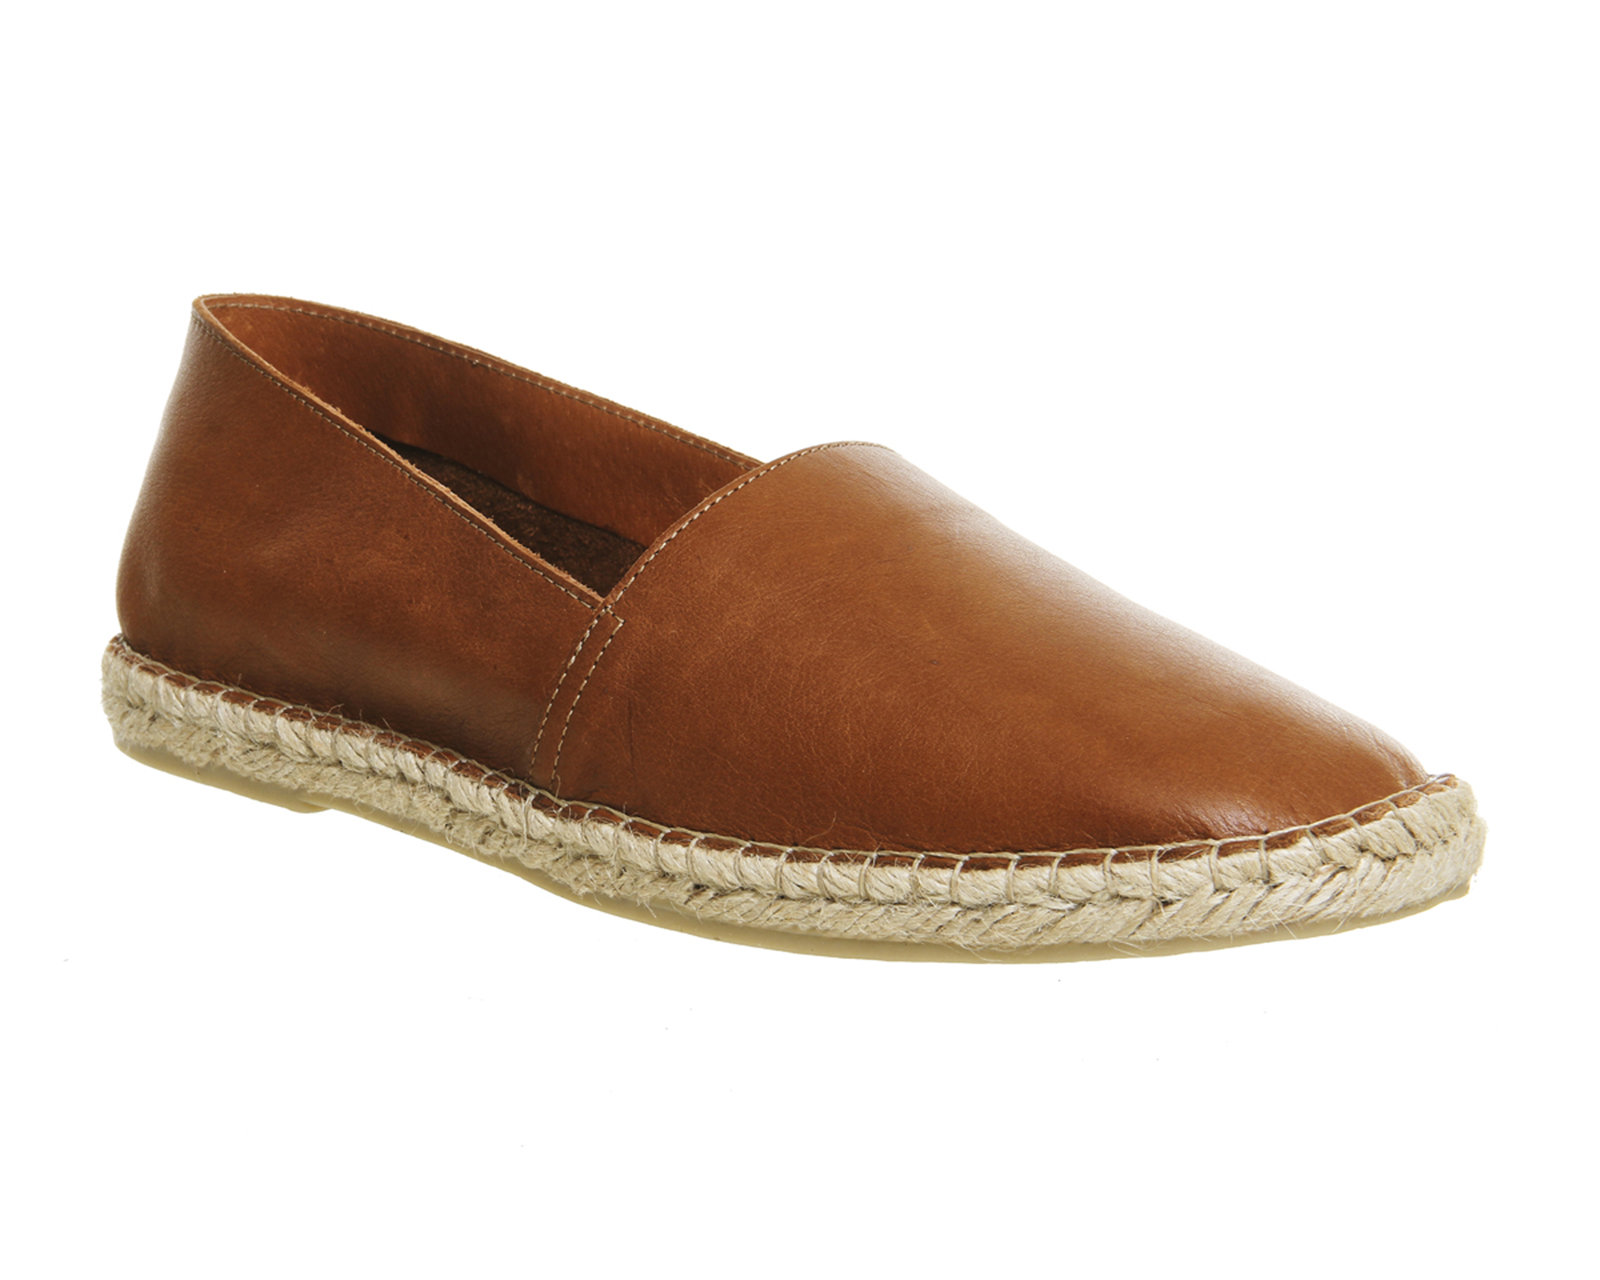 Mens Office Beach Espadrille New Tan Leather Casual